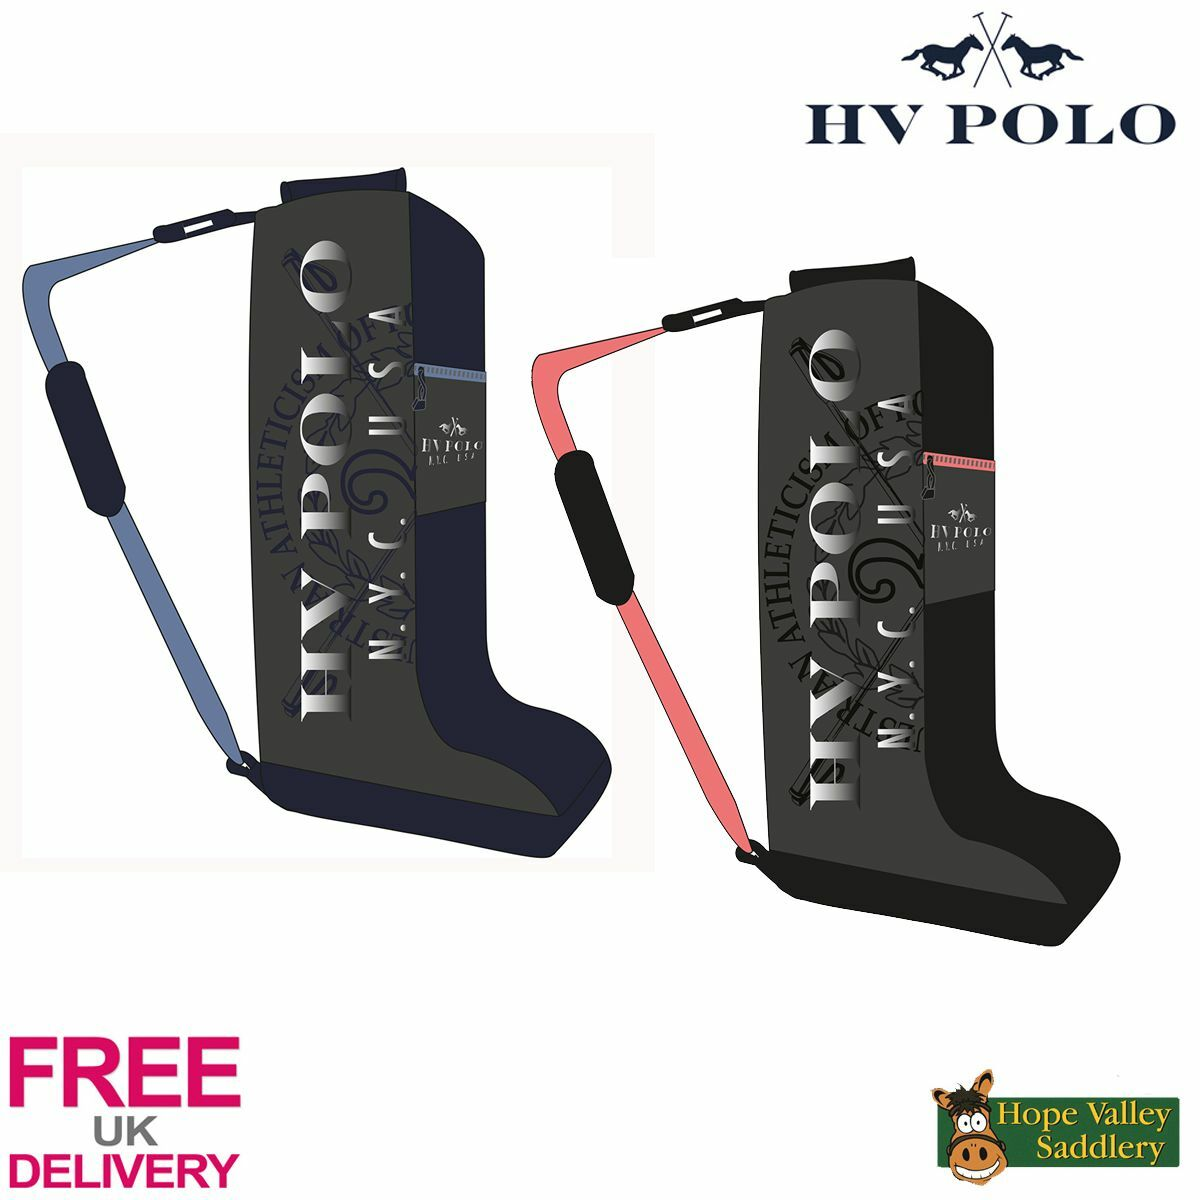 HV Polo Addison Stiefel Tasche FREE UK Shipping